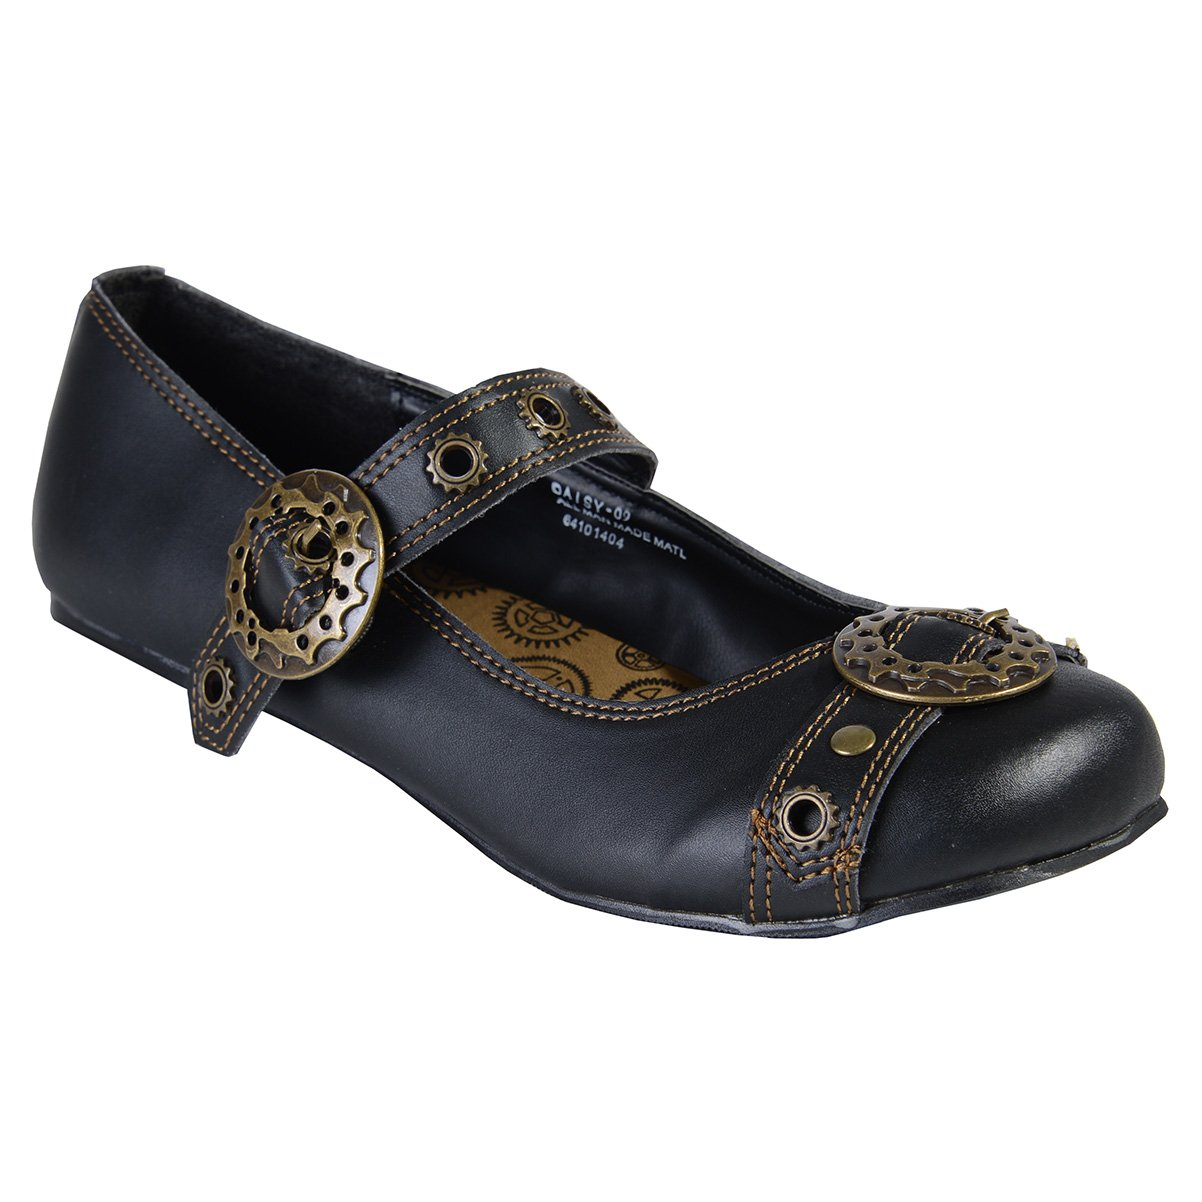 Summitfashions Black Mary Jane Ballet Flats Steampunk Gothic Style Buckles Size: 8